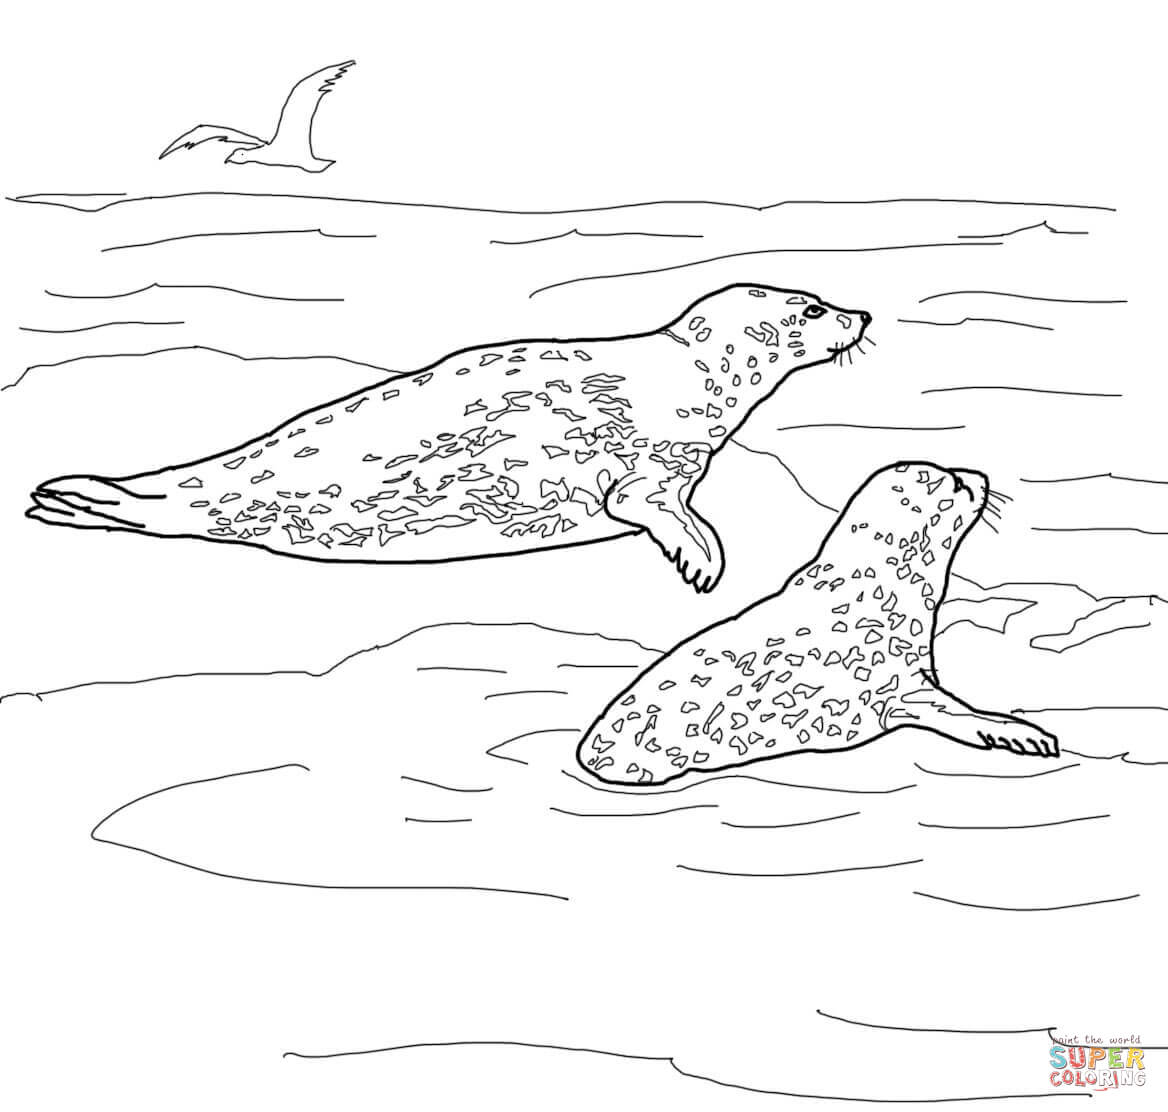 Leopard Seal coloring #16, Download drawings